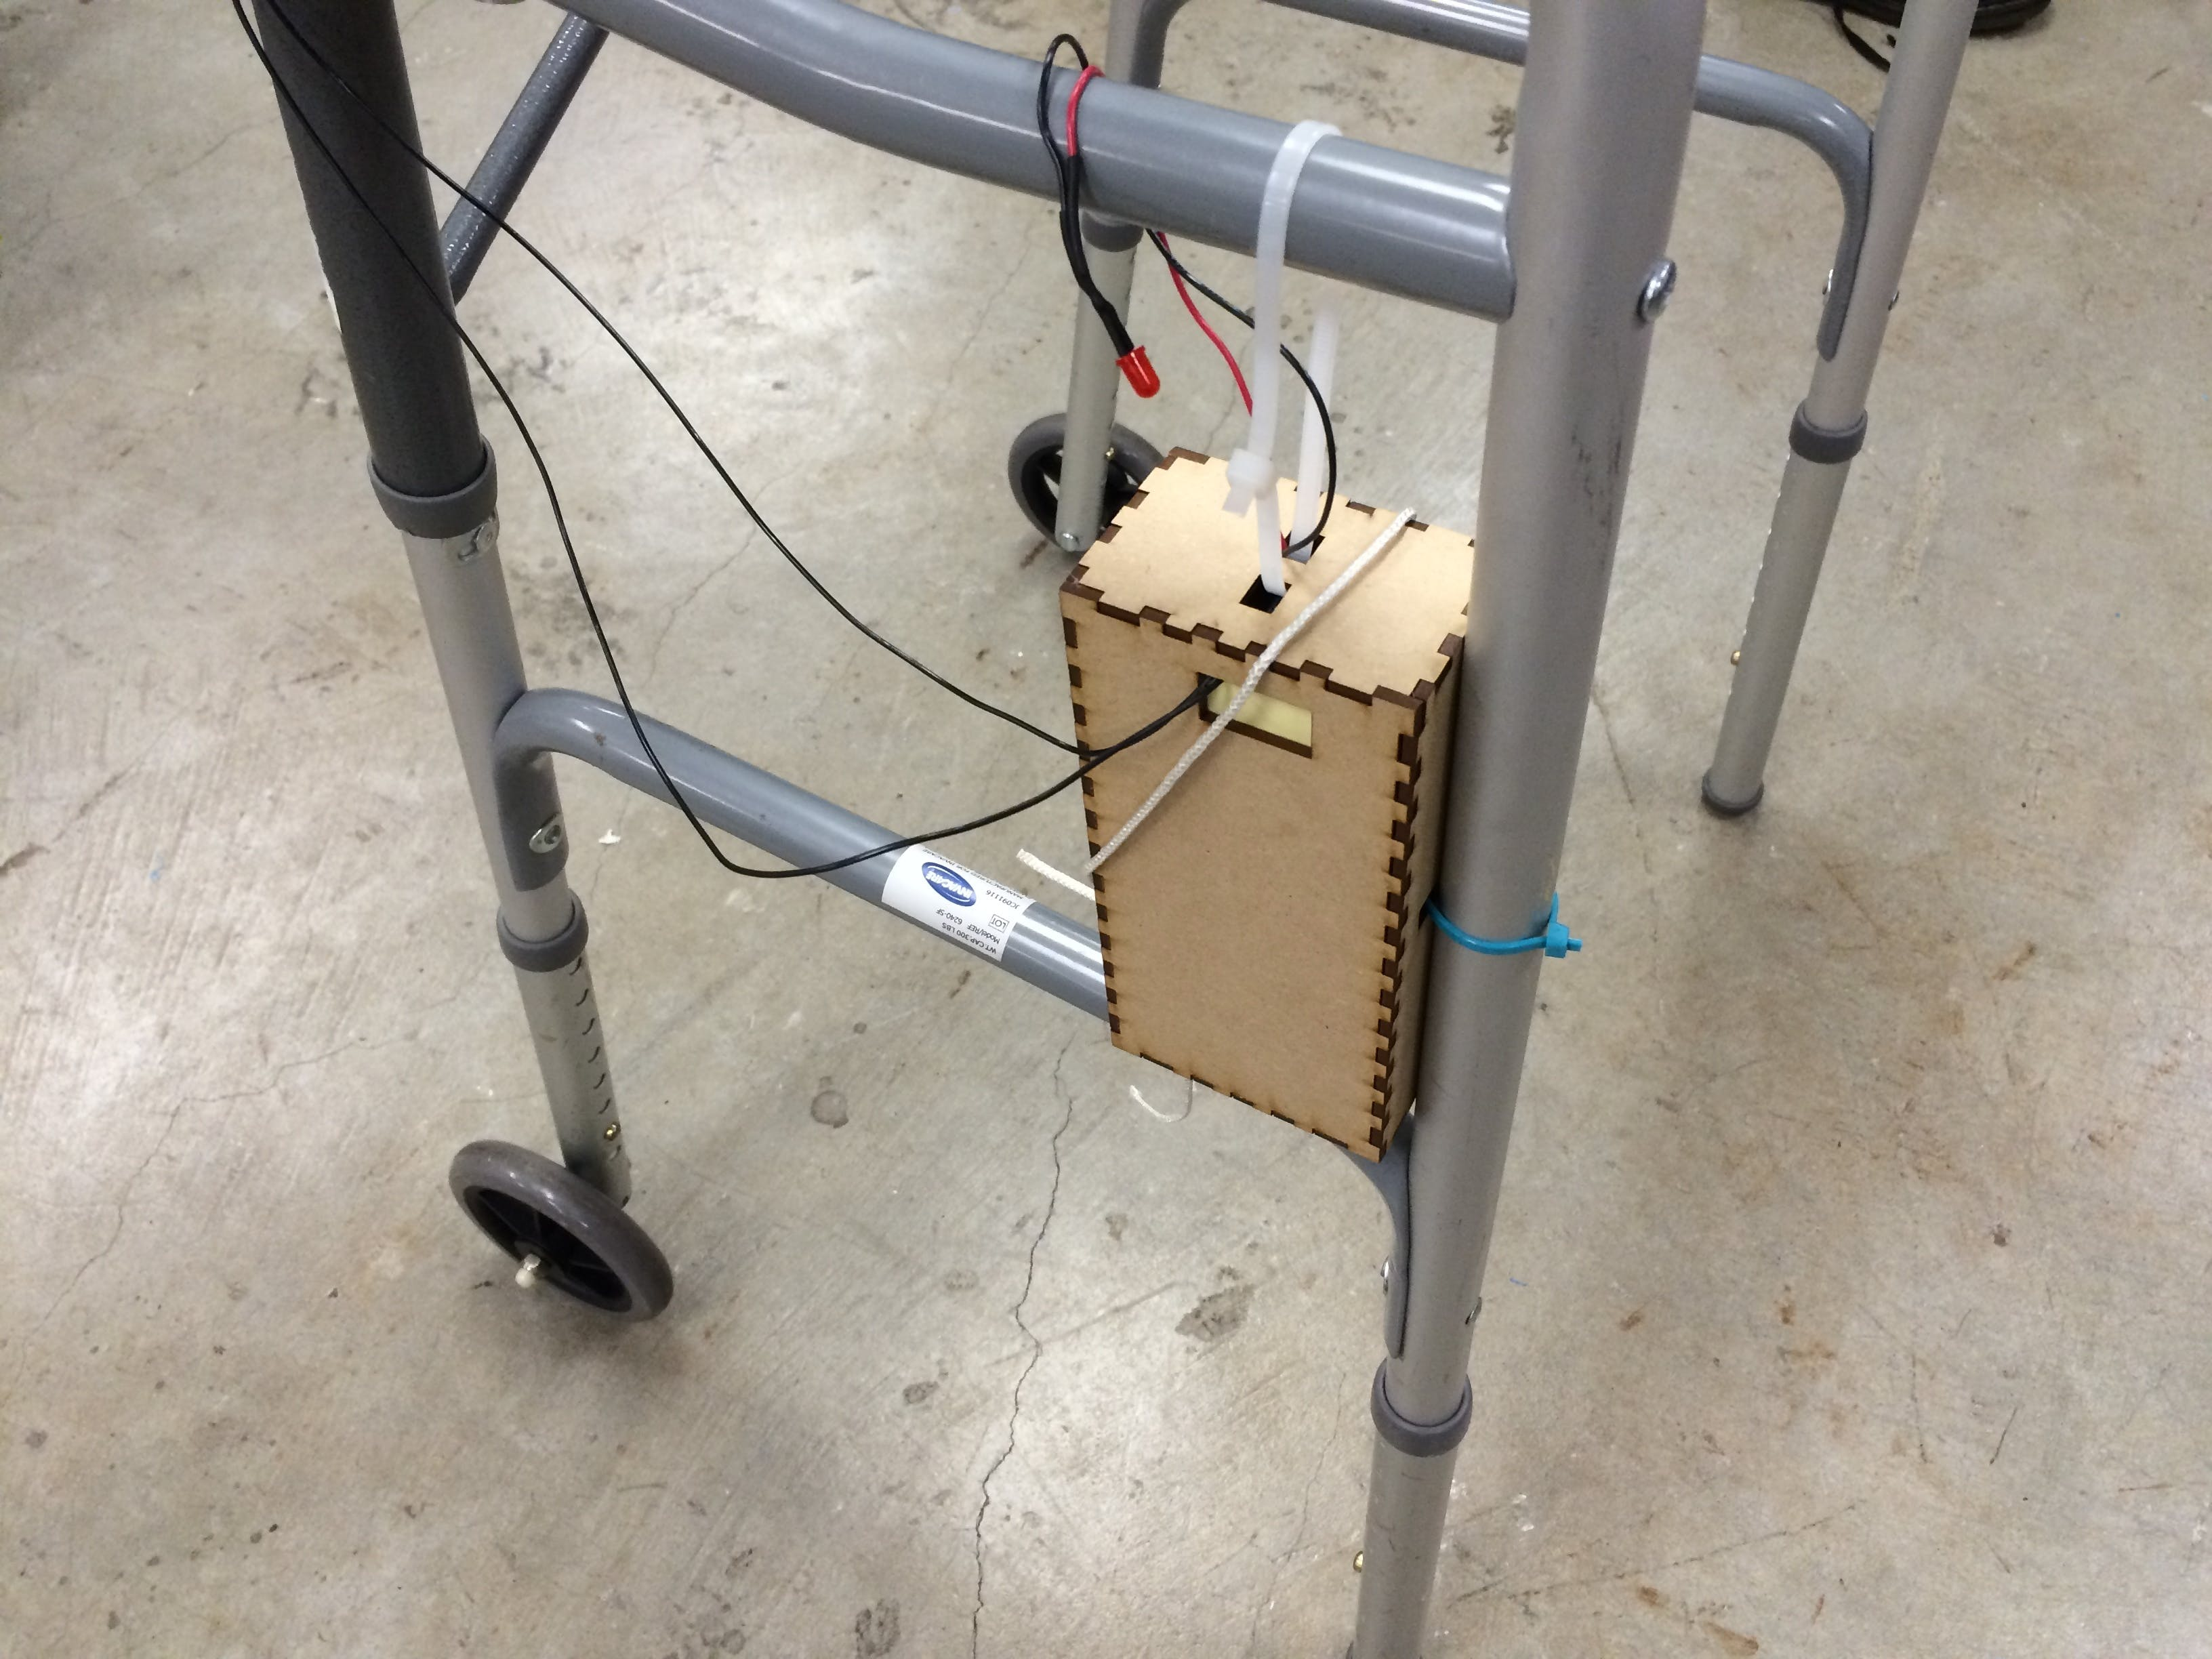 The wiring for the walker